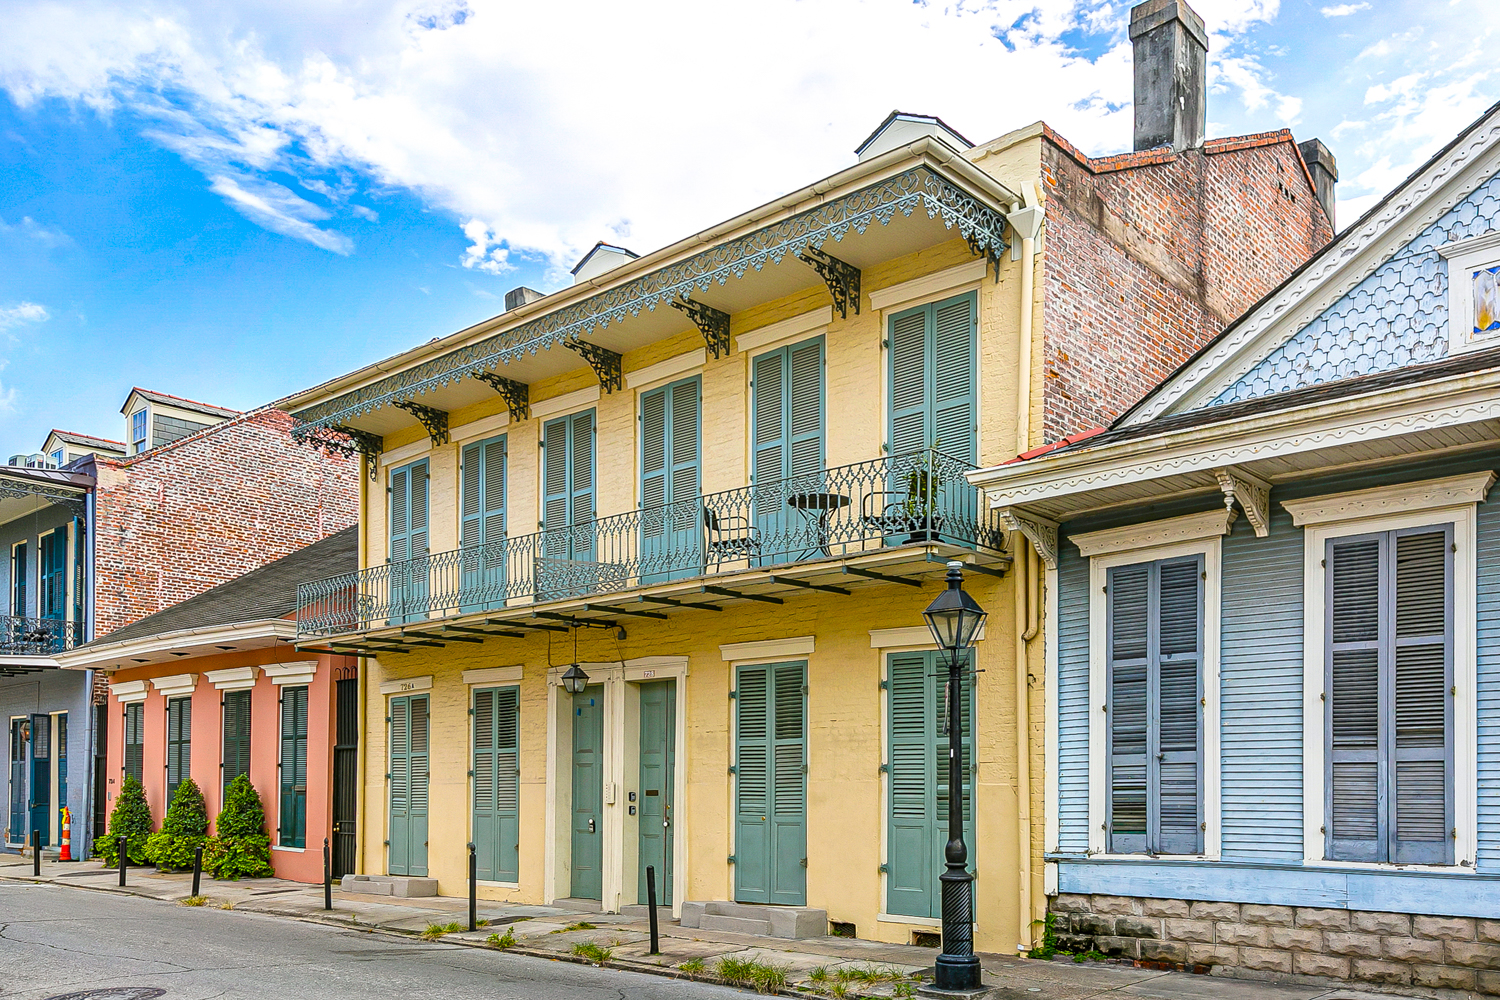 Peaceful Hideaway in the most endearing and charming part of the French Quarter on the residential side!  2 bedrooms but one bedroom is used as an office. The unit is set back about 100 feet from the street and is EXTREMELY quiet. The condo does not share walls with other residences and you feel truly set apart from the hubbub of the Vieux Carre. The unit is a 5-minute walk to Frenchmen Street, the Marigny, hundreds of bars/restaurants and many music clubs.